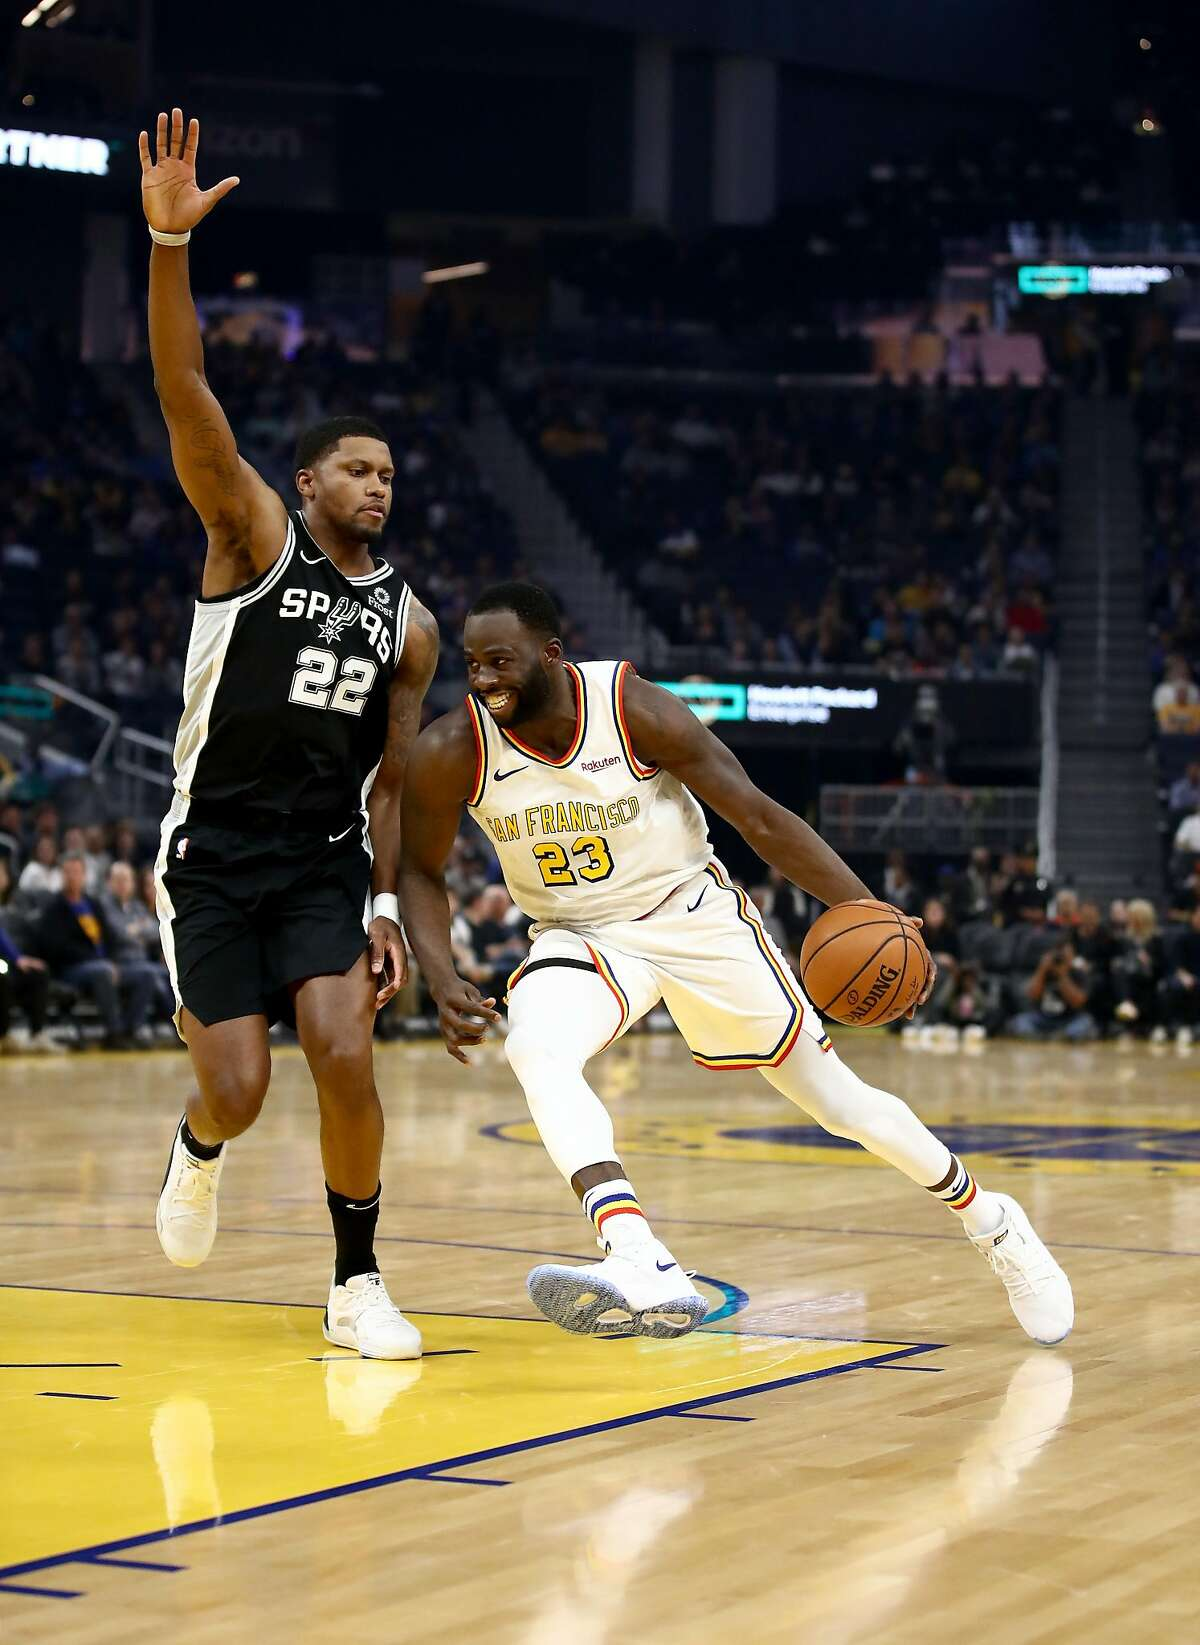 Draymond Green #23 of the Golden State Warriors drives on Rudy Gay #22 of the San Antonio Spurs at Chase Center on November 01, 2019 in San Francisco, California.